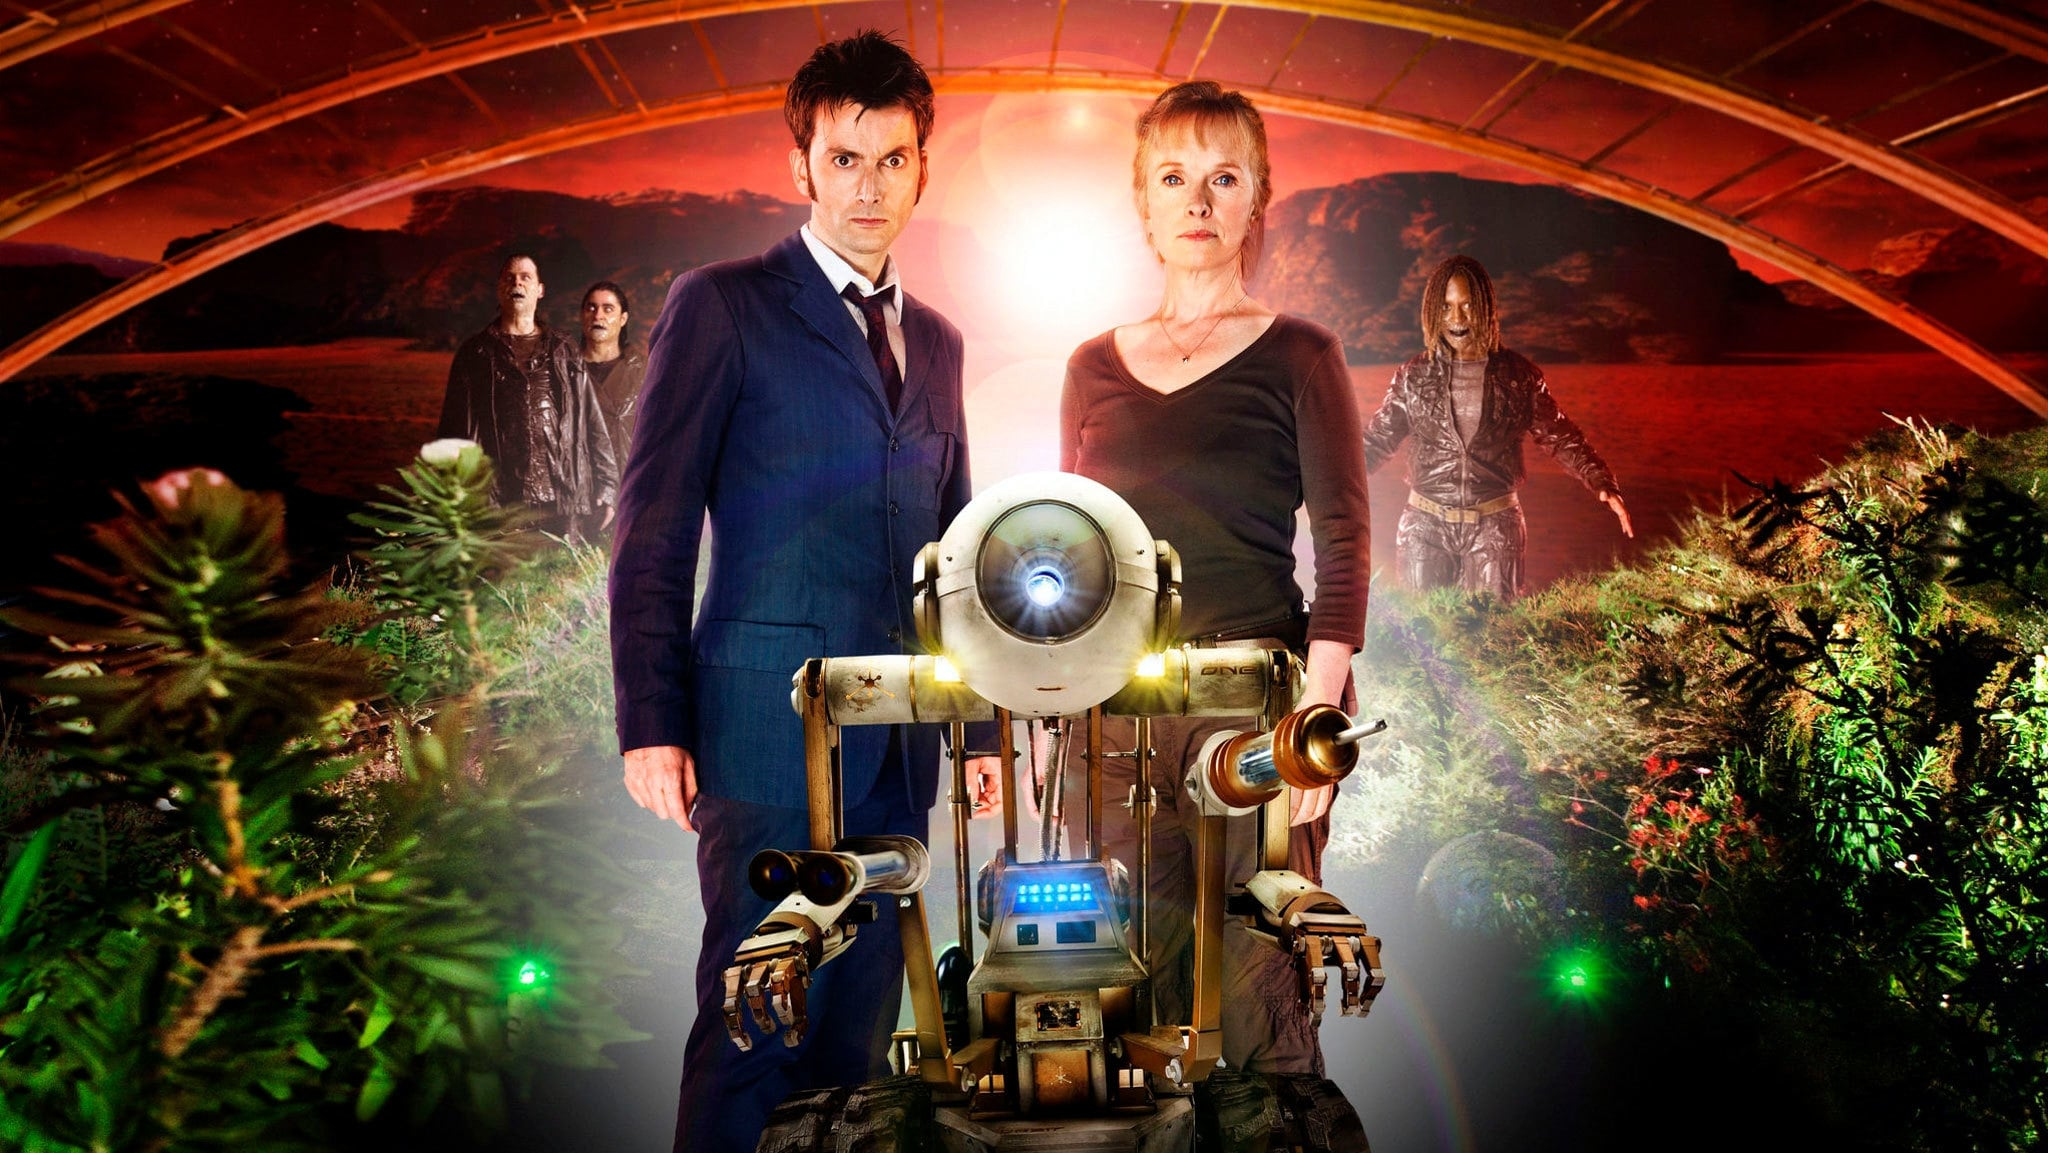 Doctor Who - Season 0 Episode 14 : The Waters of Mars